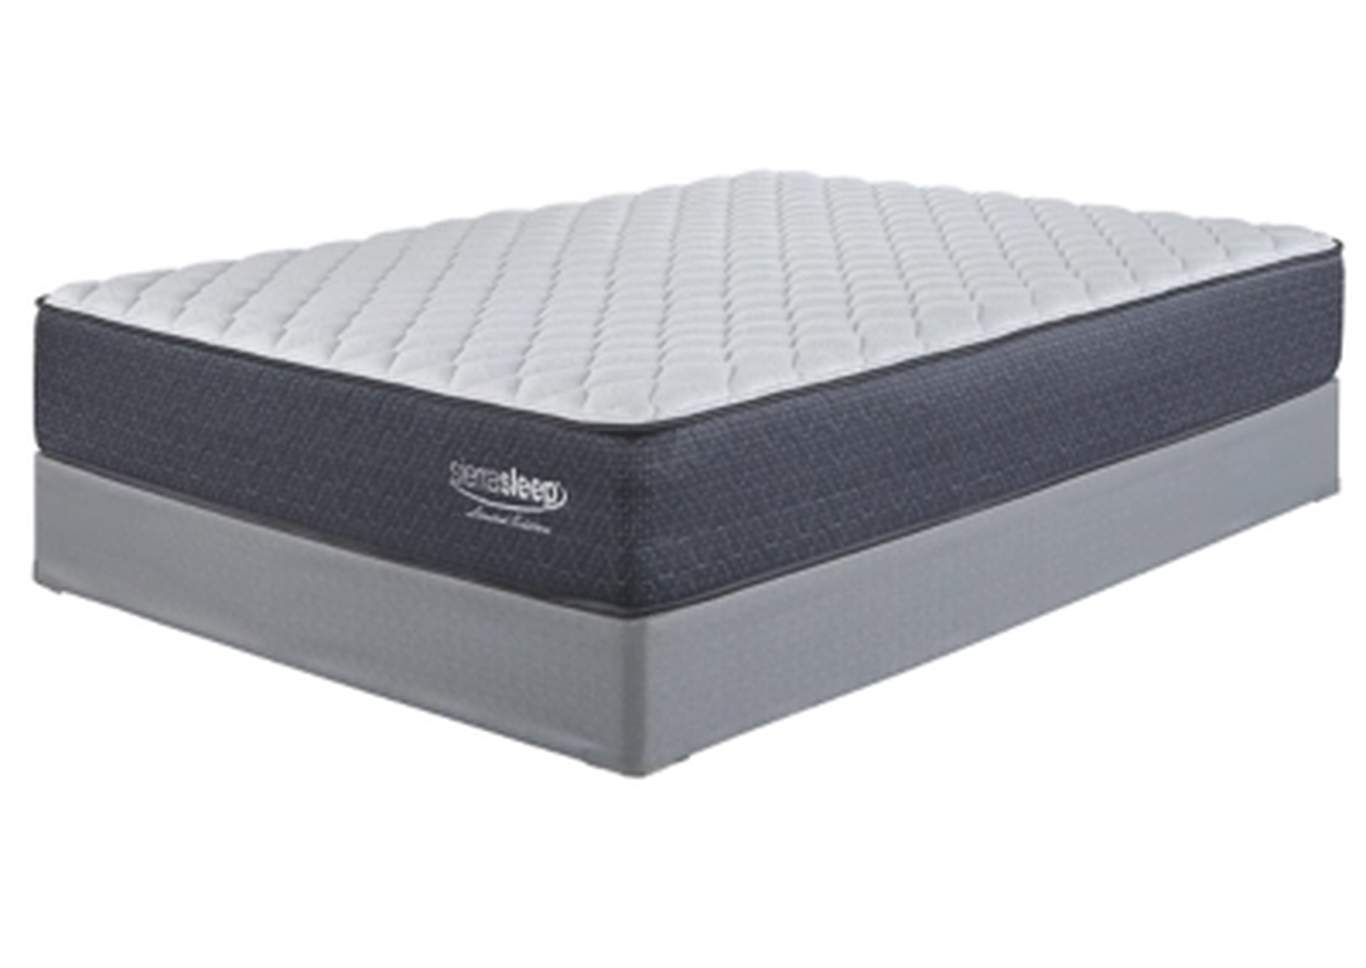 Limited Edition Firm White Queen Mattress w/Foundation,Sierra Sleep by Ashley